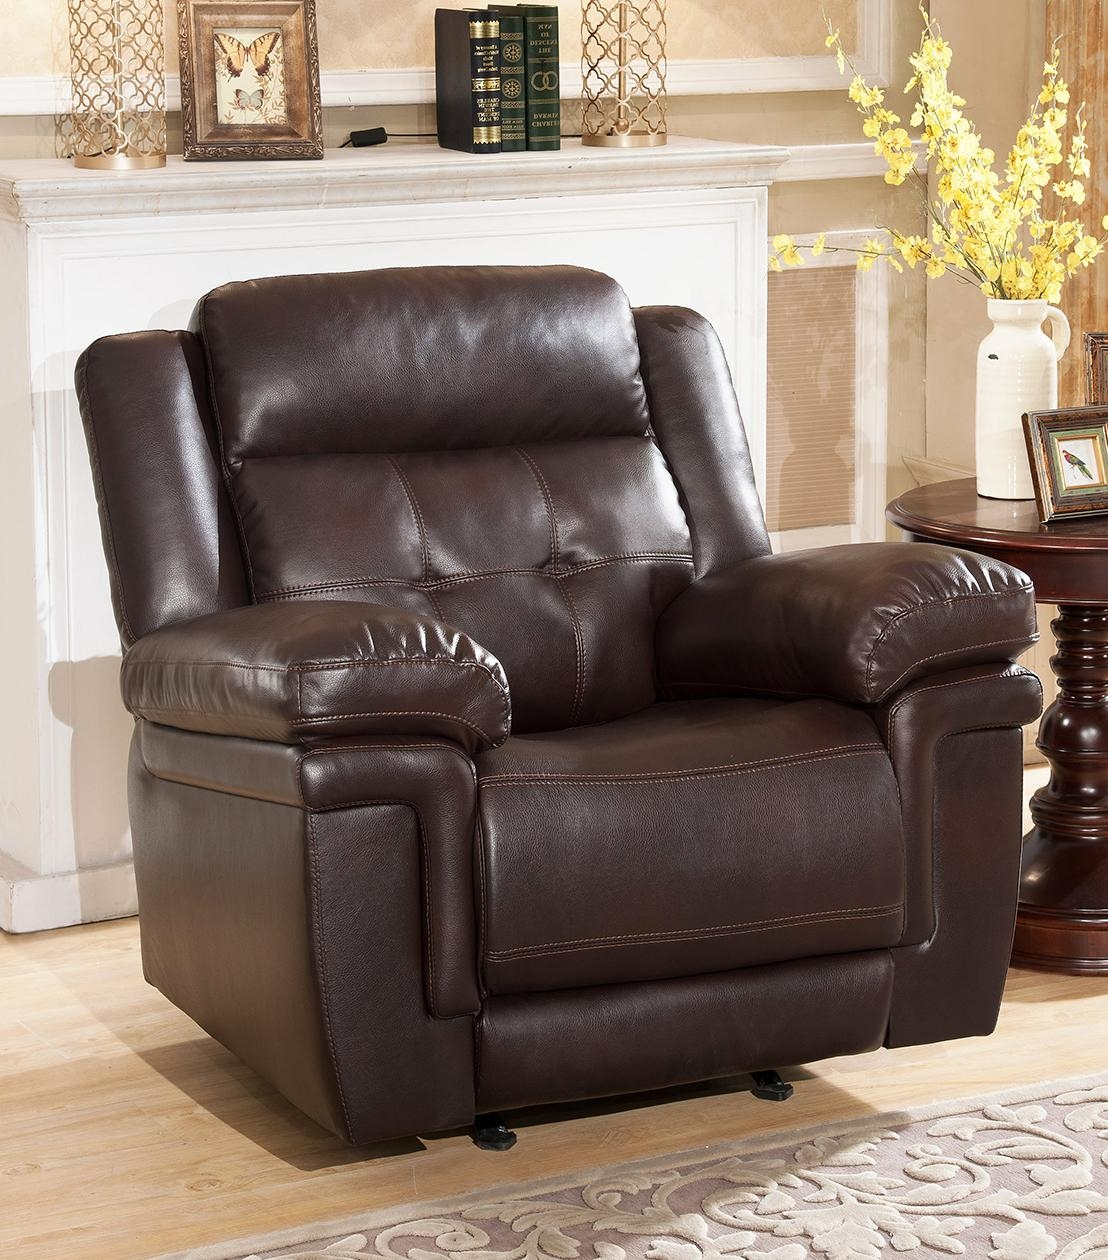 Recliners : Carly Leather Rocker Recliner Within Abbyson Recliners (Image 12 of 20)